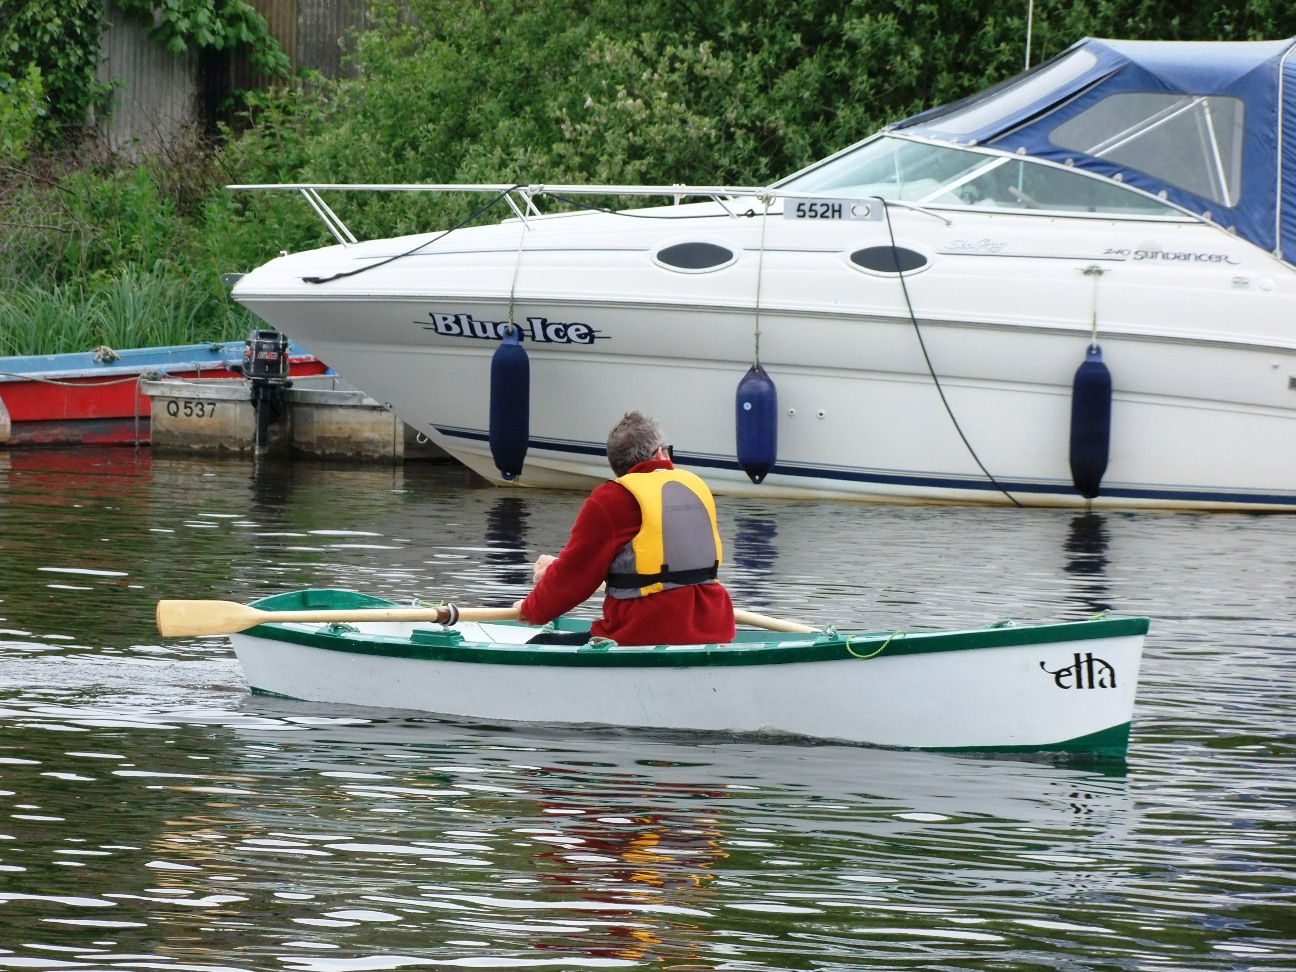 We try the rowing version of the Ella stitch and glue ...